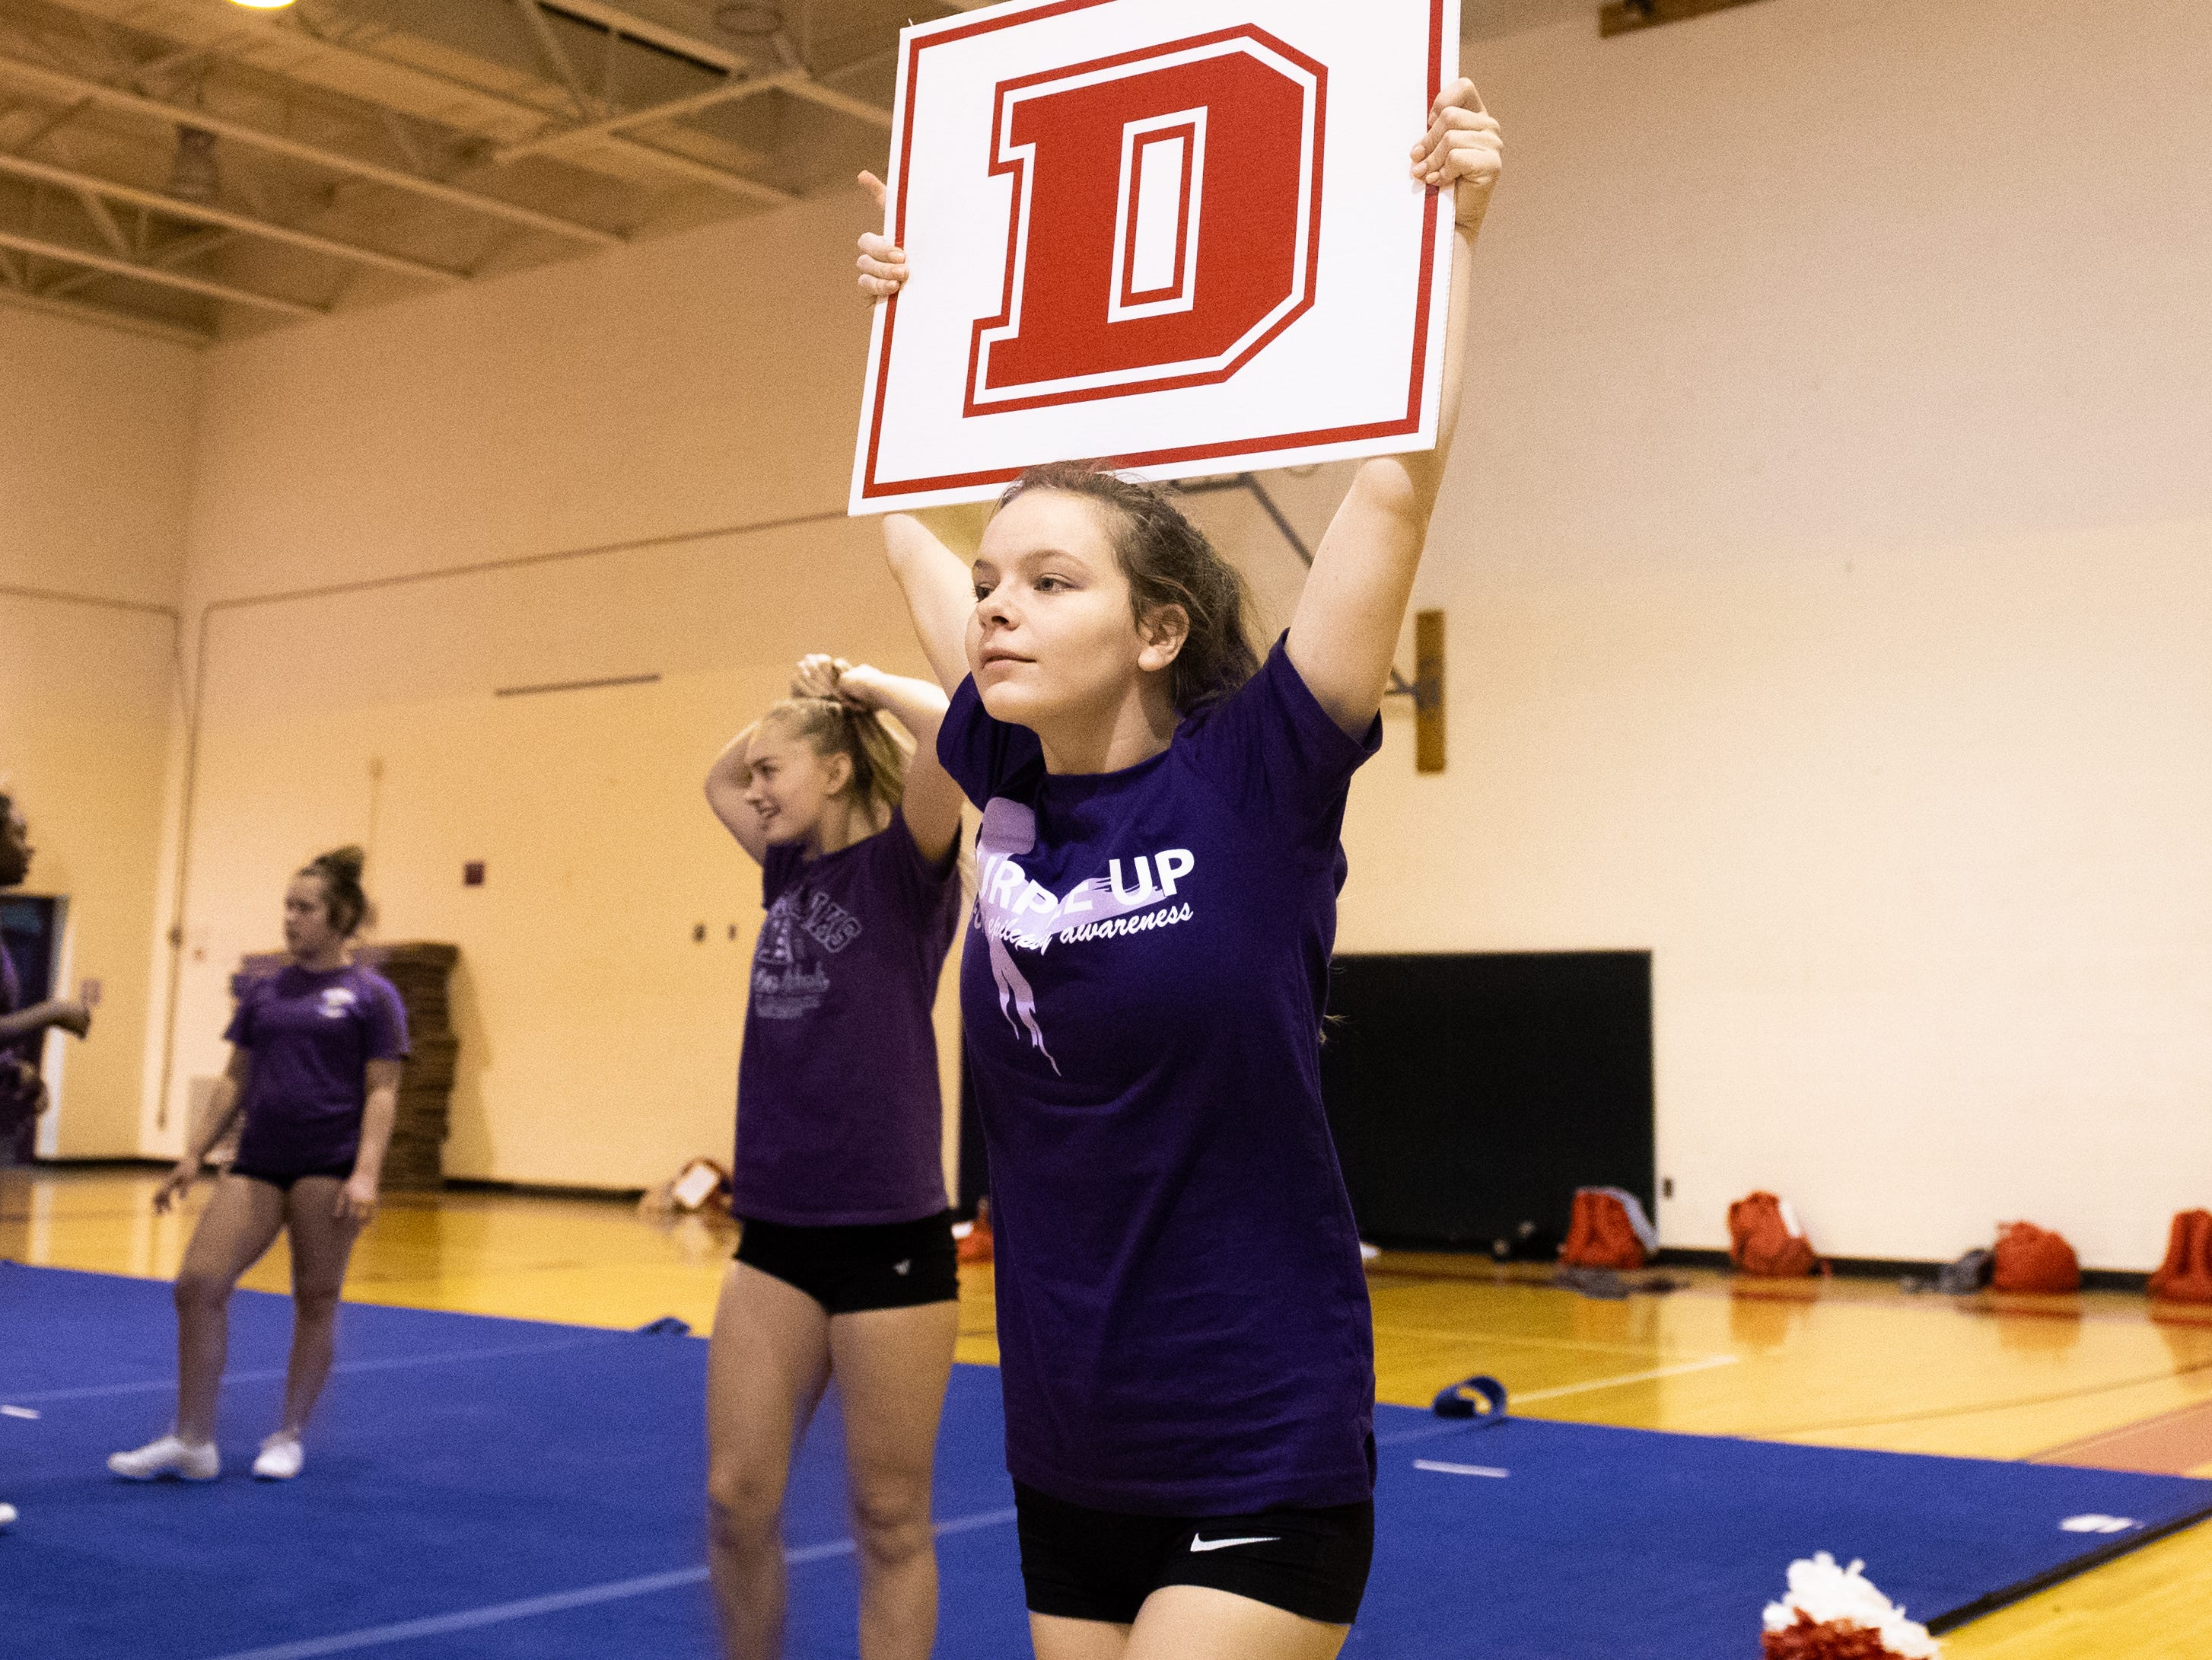 Abby Reiber holds up a letter during Dover's competitive spirit practice, November 14, 2018.